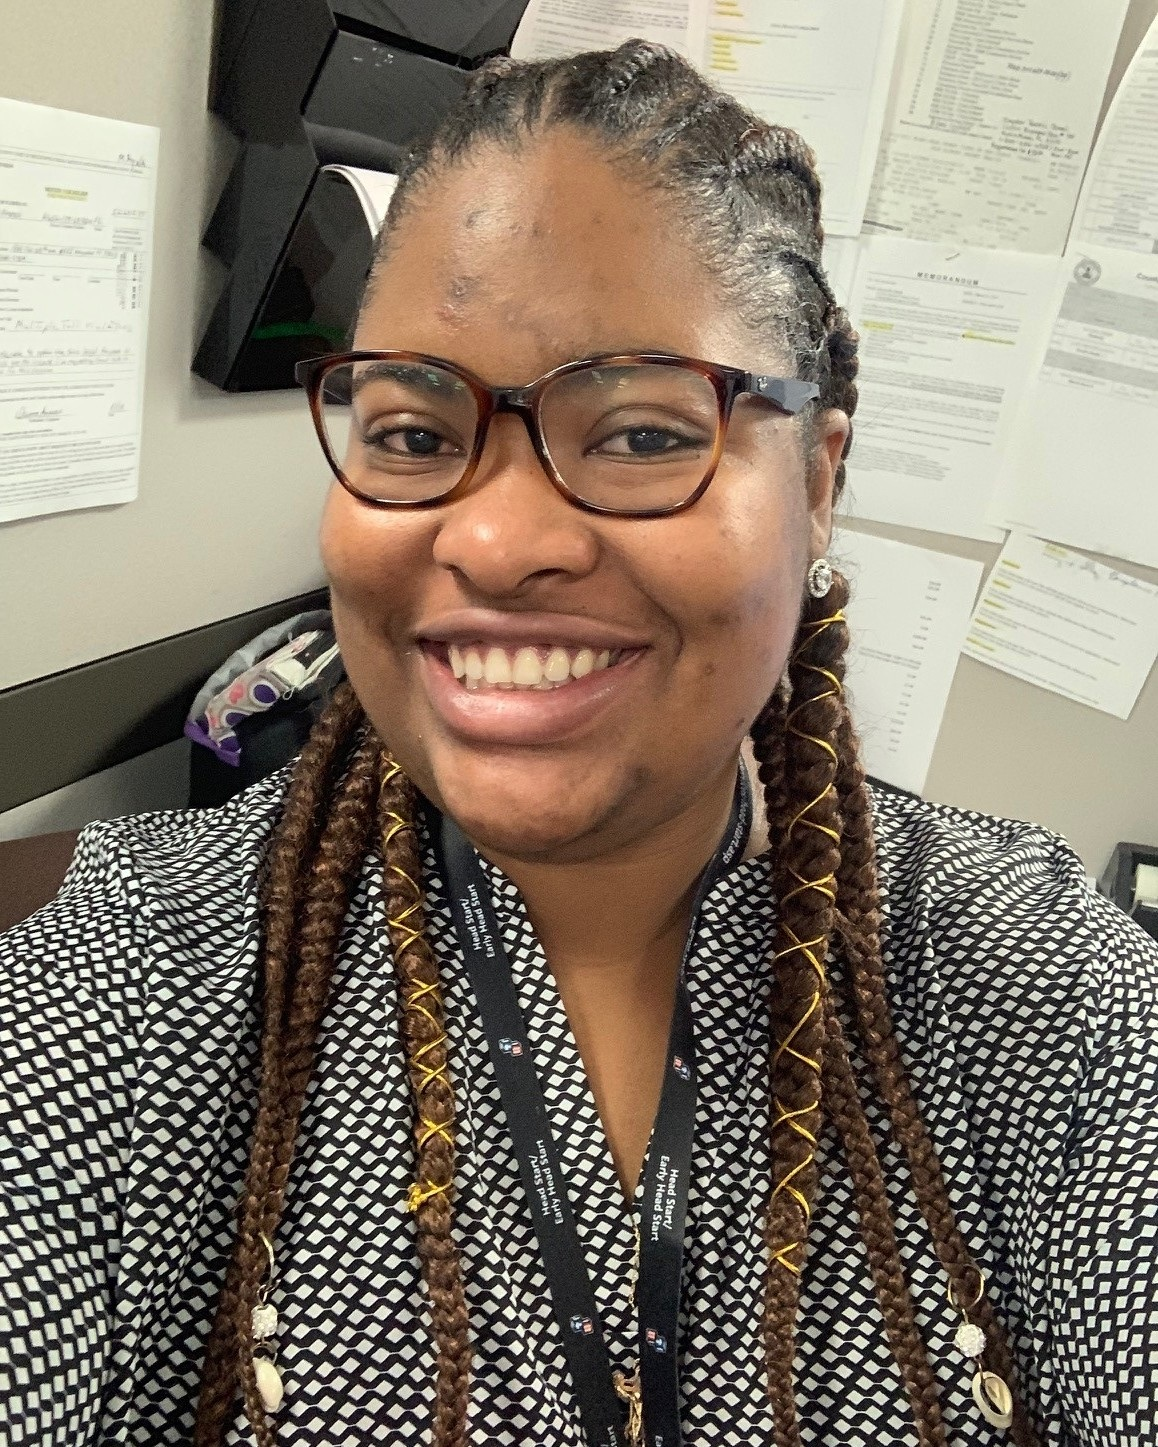 """Brittany, Employee - """"I am thankful to WorkSquare for helping me line up this amazing job opportunity. The best part of my new job is the endless learning opportunities and growth within the Miami-Dade County Clerk of Courts. They present you with all the tools to succeed. I'm really grateful to be apart of the team!"""""""